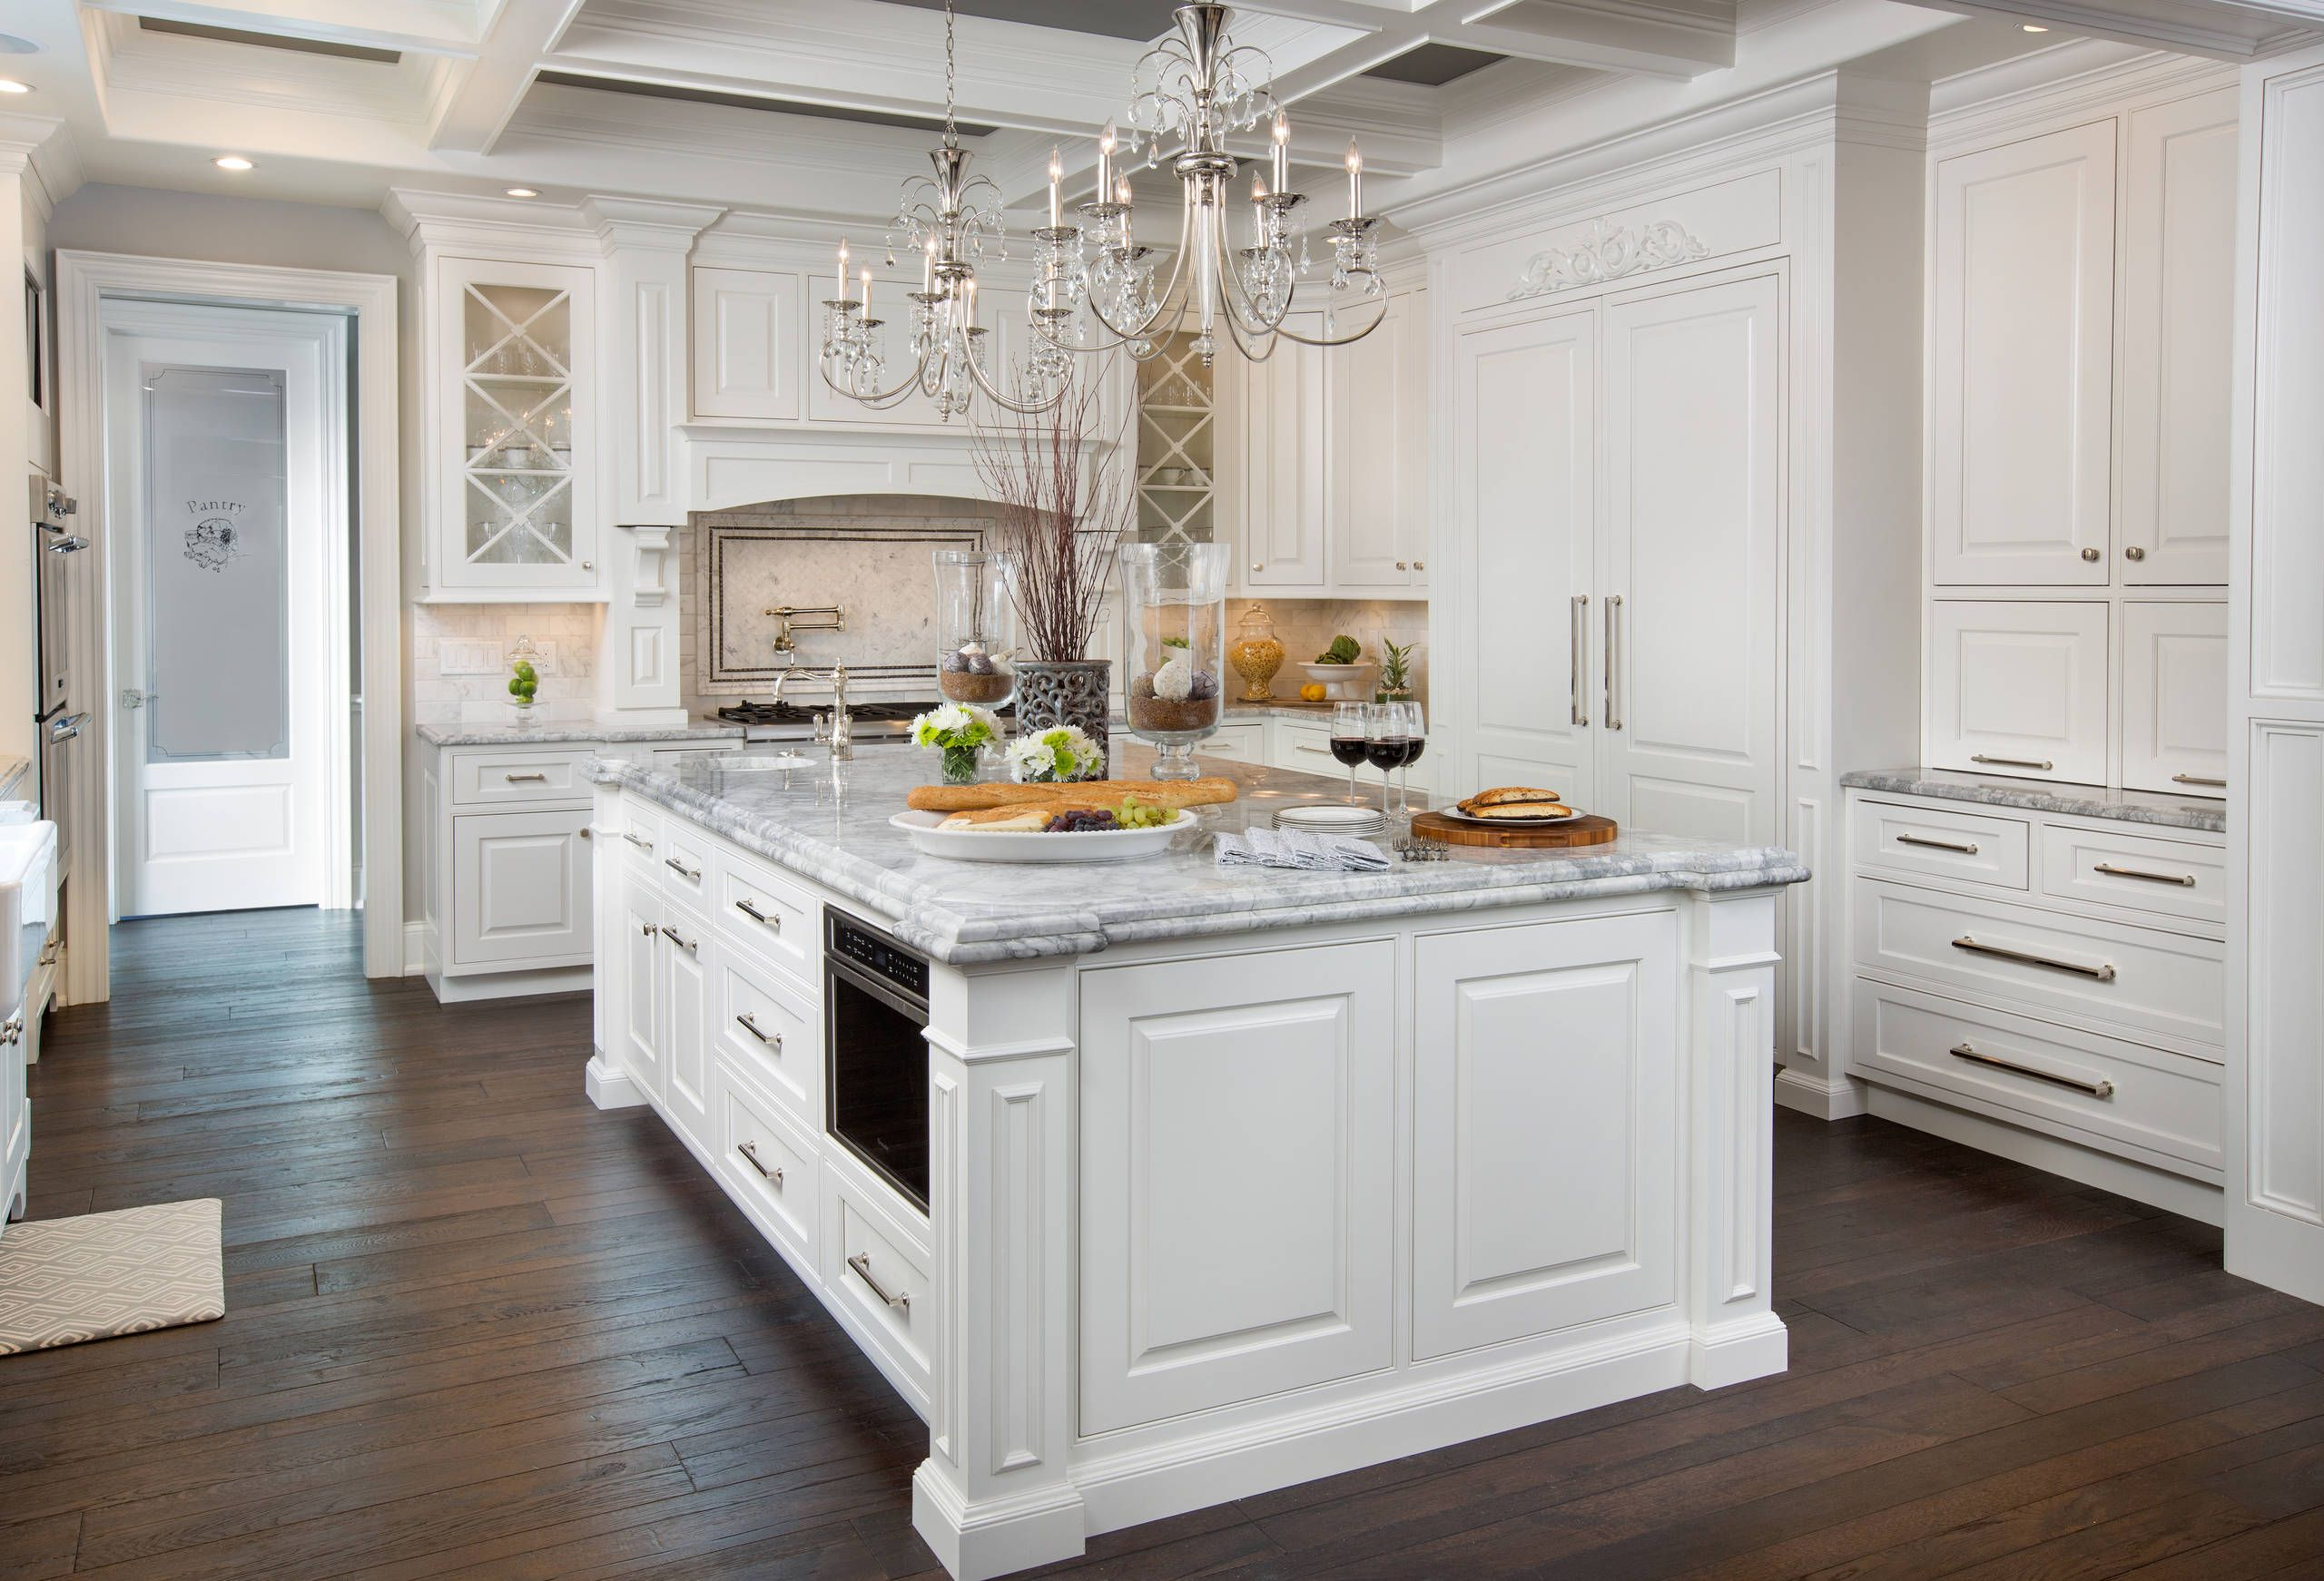 7 Steps To Decorating Your Dream Kitchen Make Sure To Buy Our Must Have Items Betterdecoratingbi Kitchen Marble White Kitchen Decor Kitchen Cabinet Design